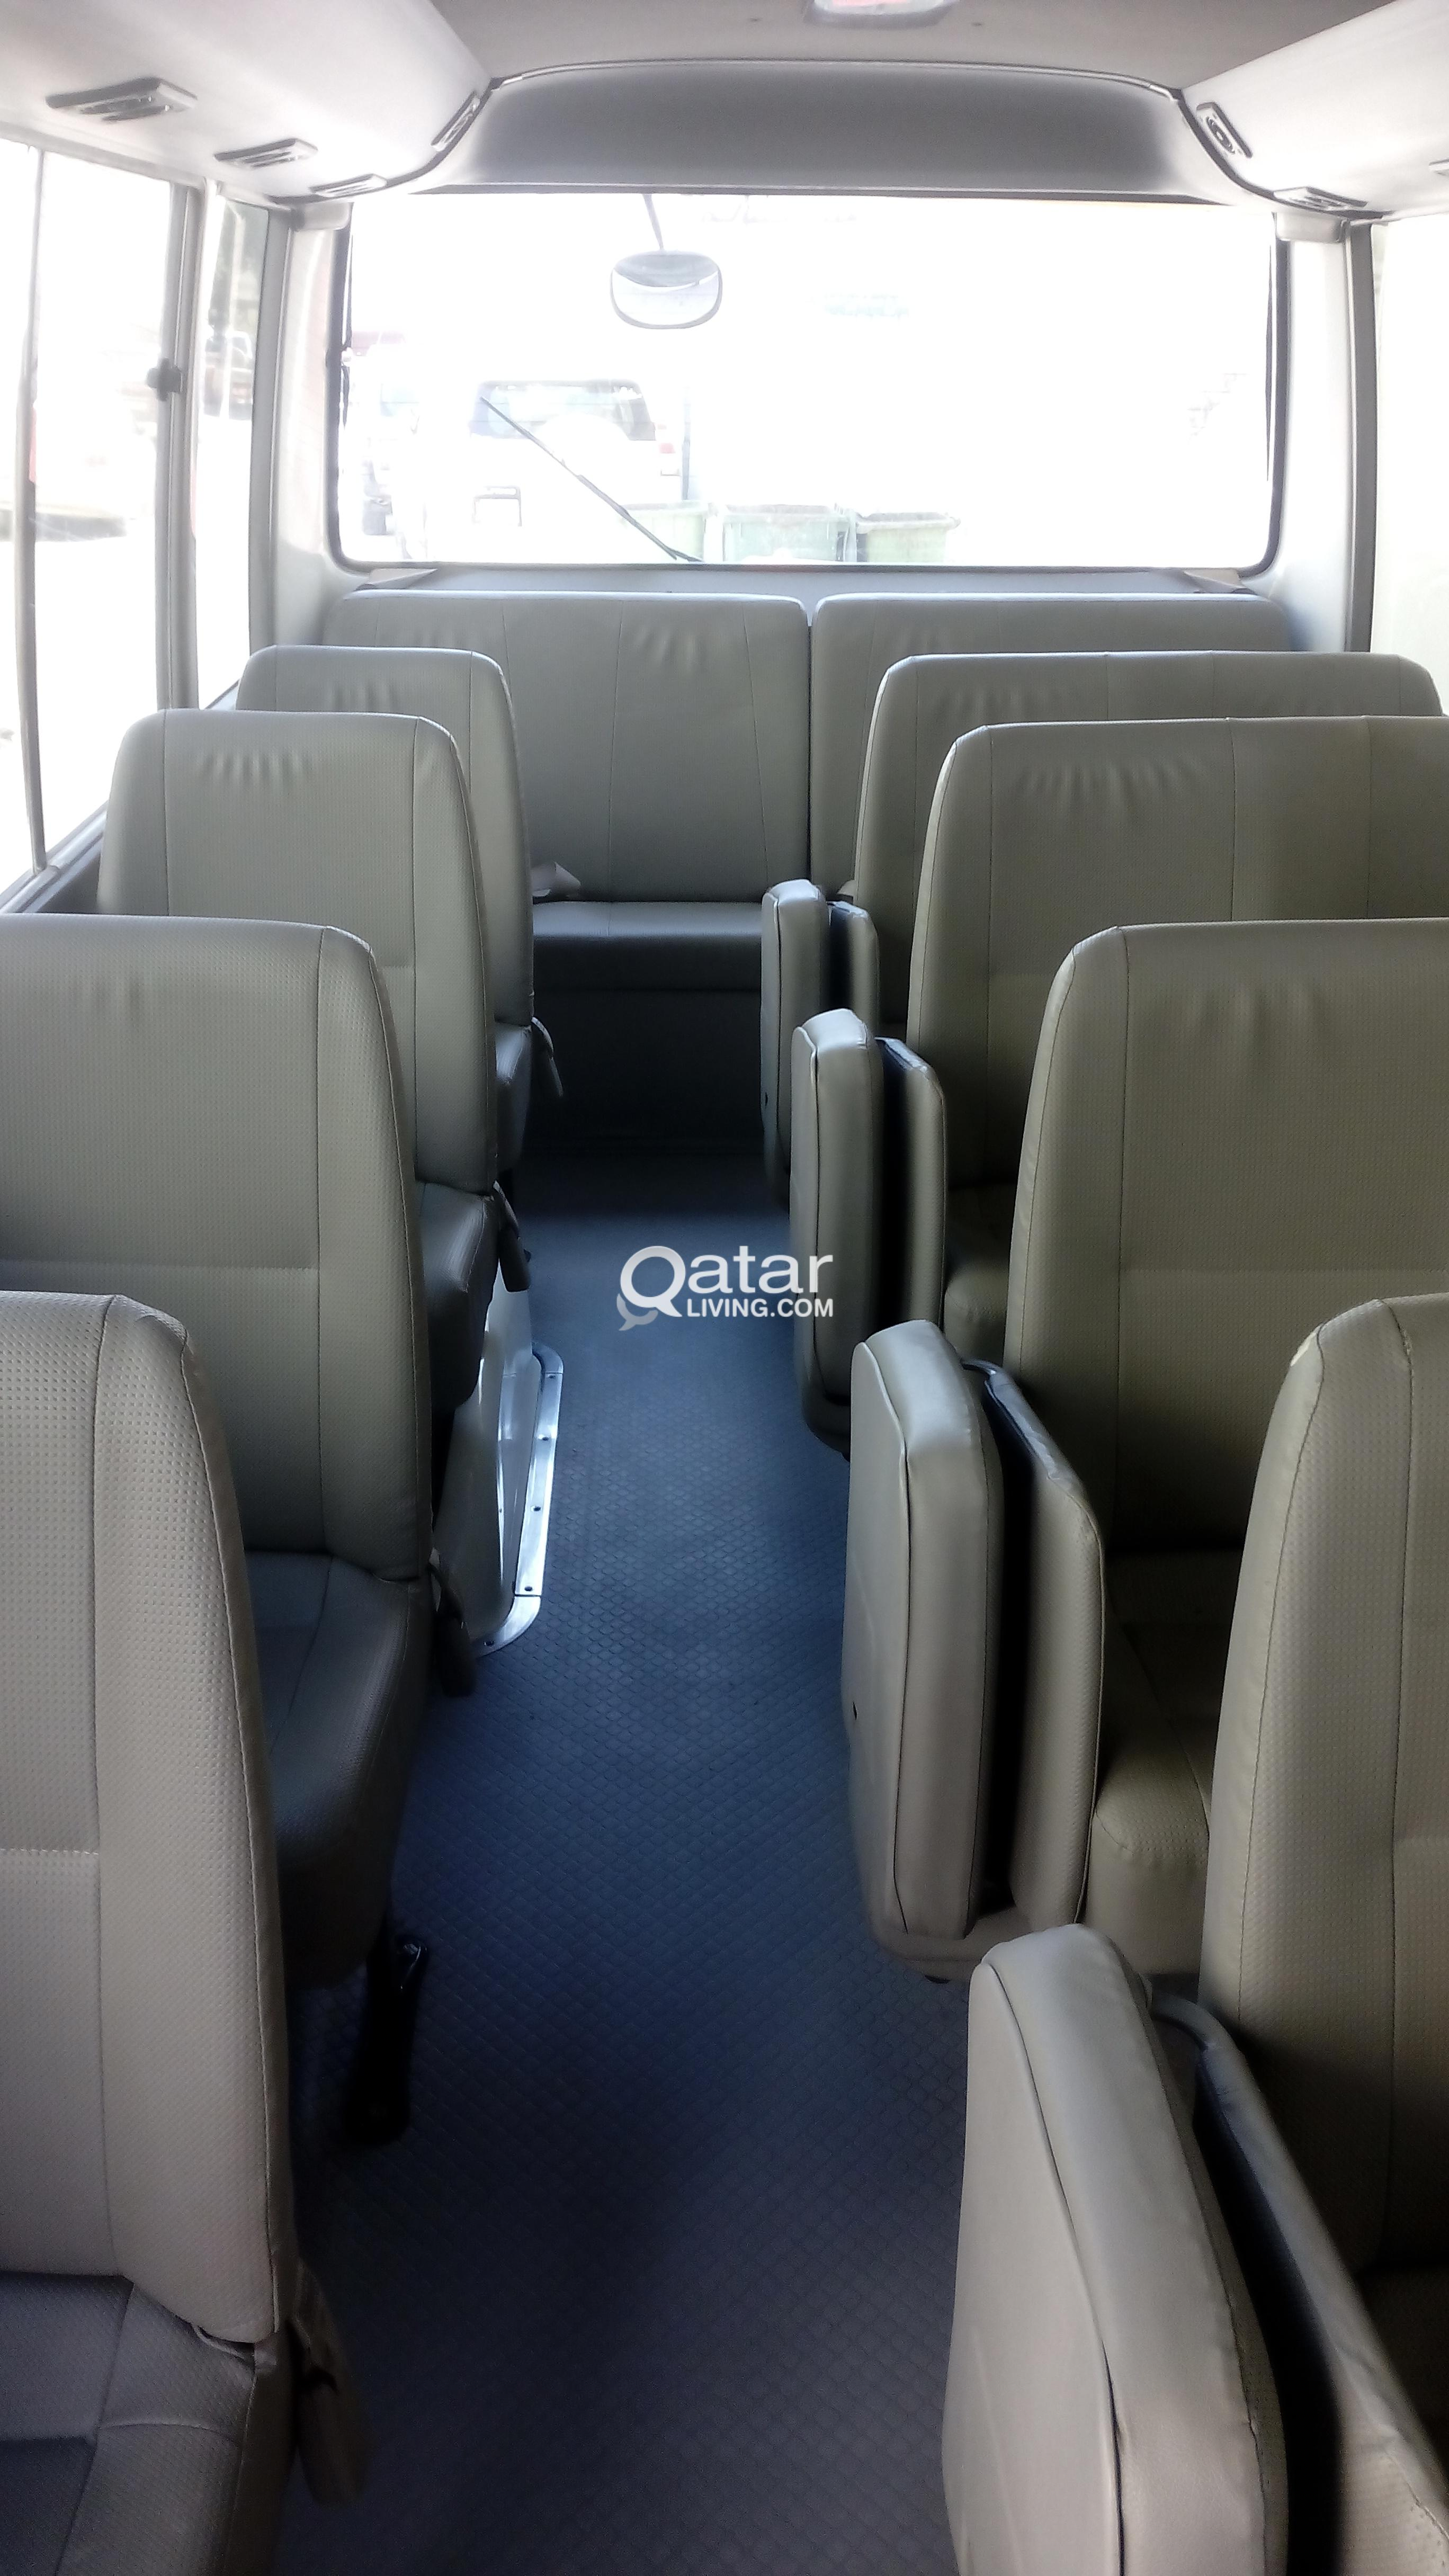 Toyota bus for Rent excellent condition neat and c